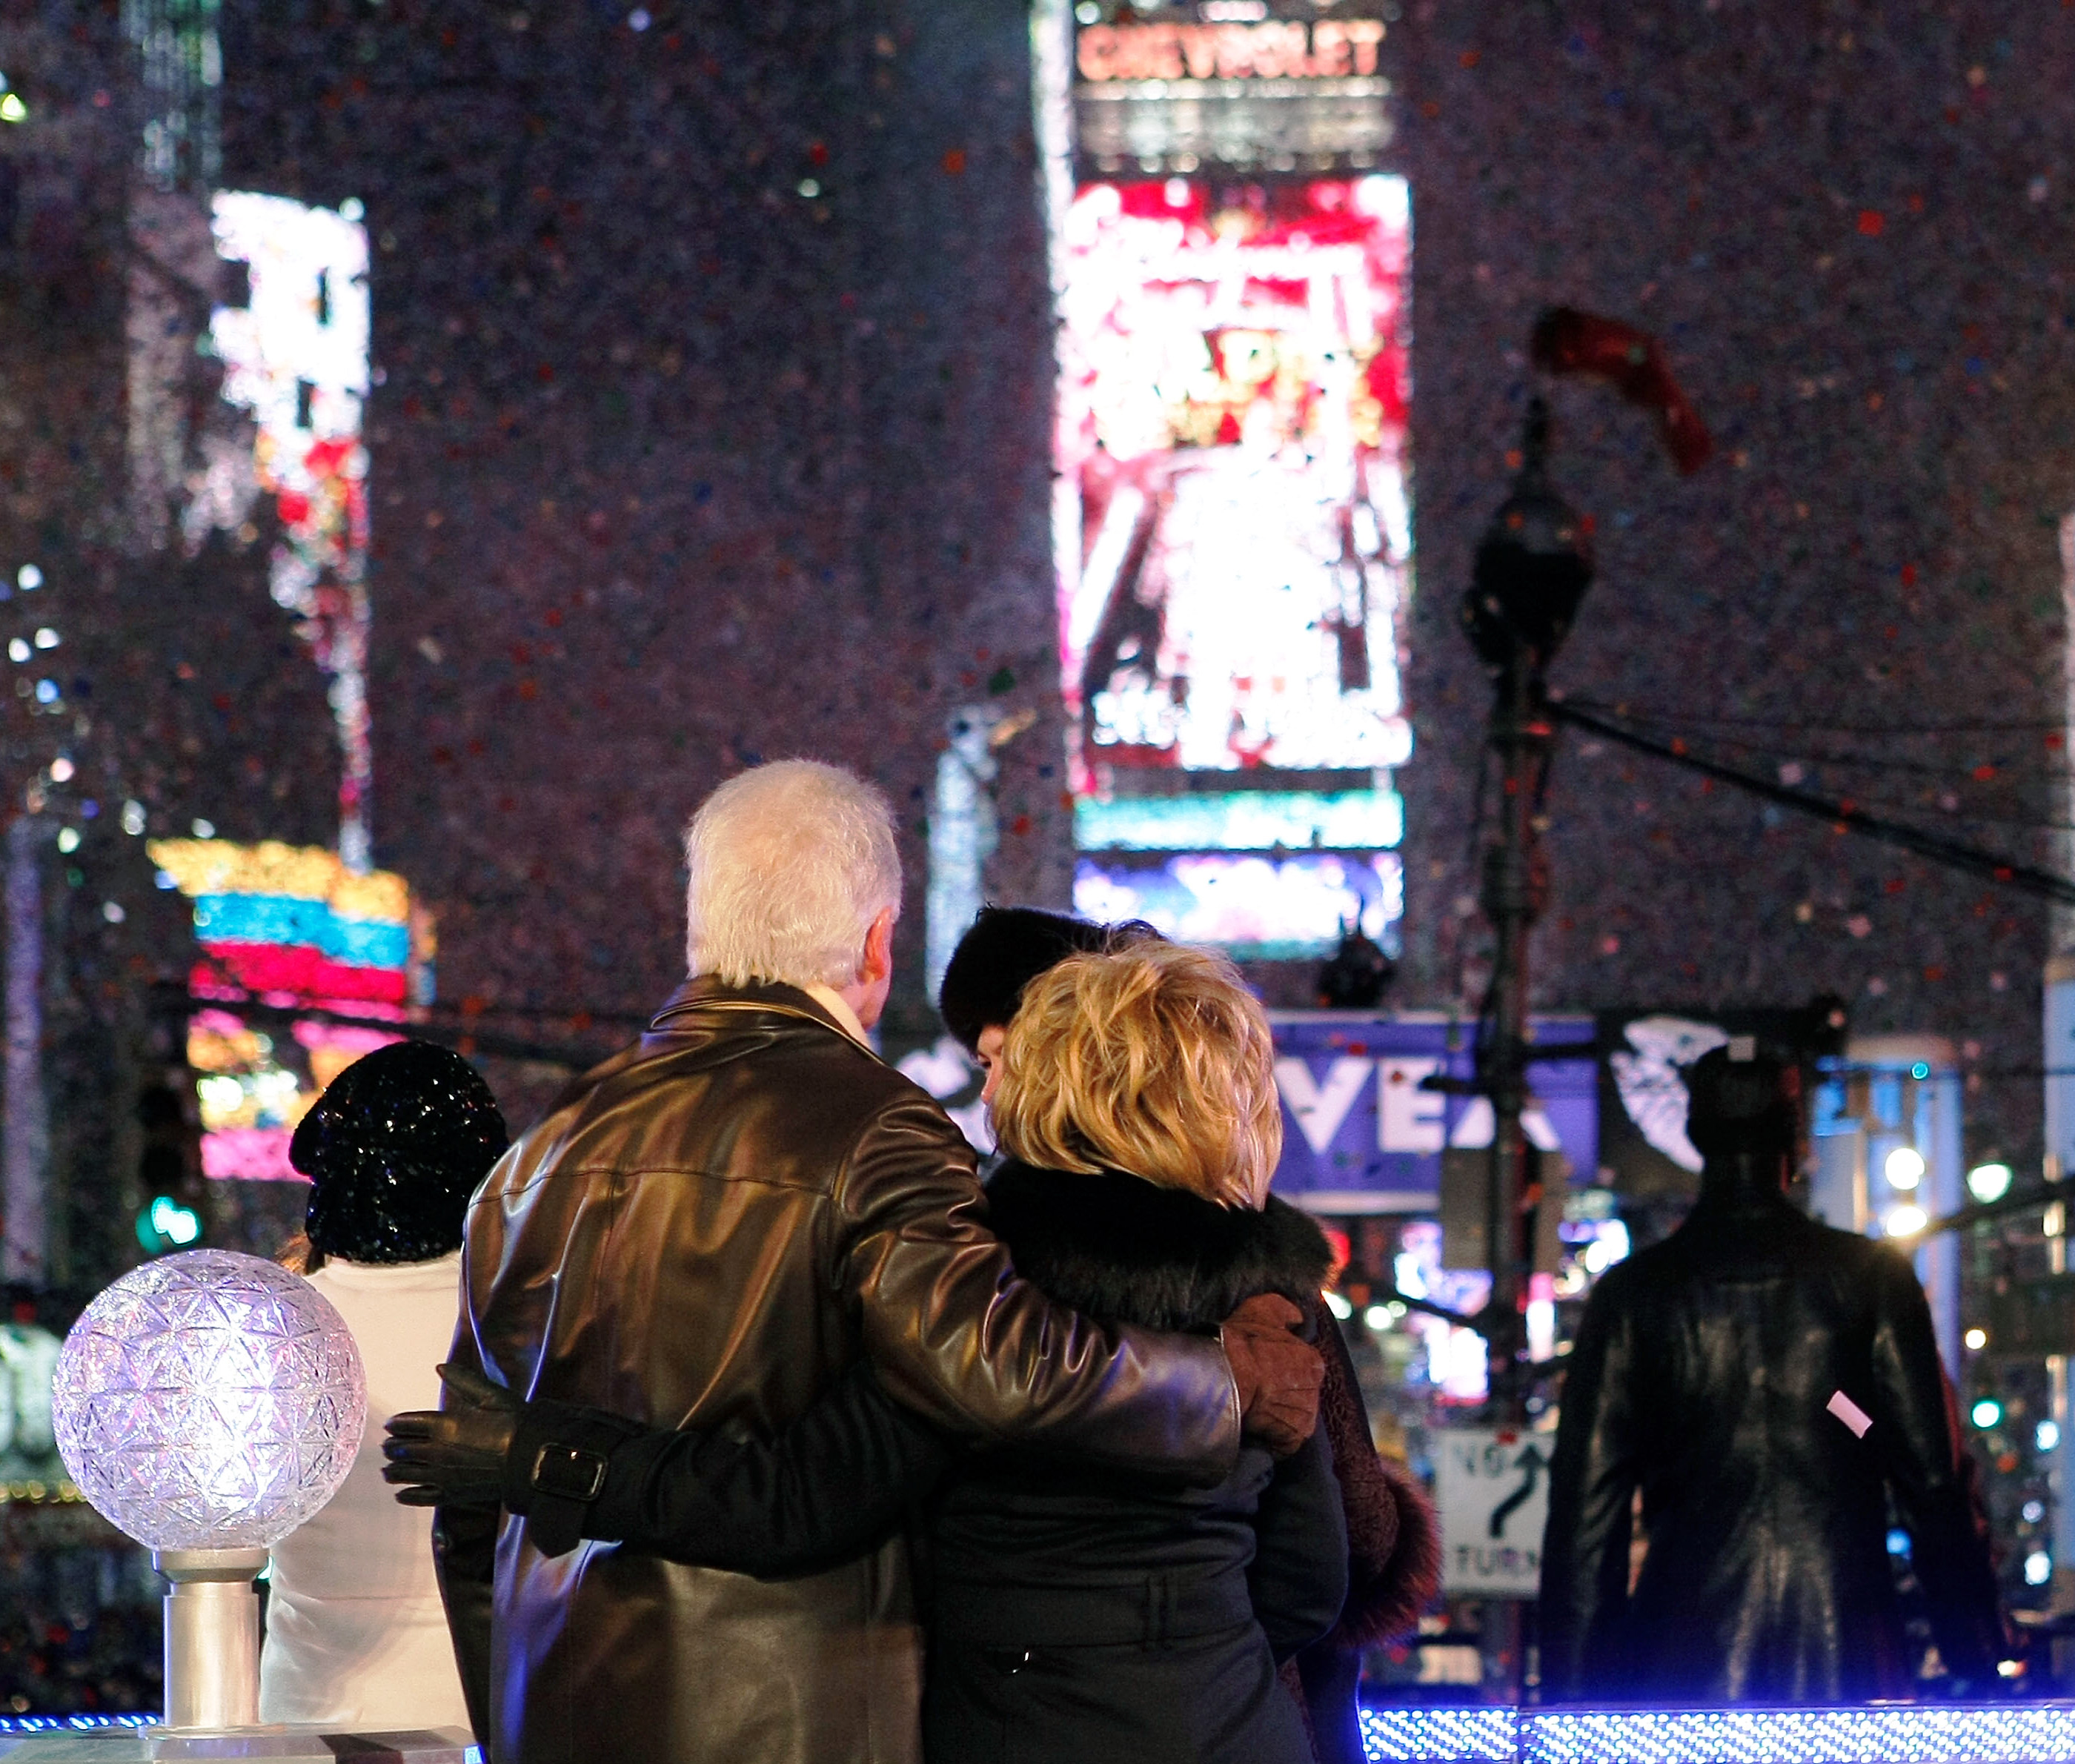 Former President Bill Clinton and then Secretary of State-elect Hillary Clinton celebrate the beginning of the year 2009 during the ceremony to lower the Times Square New Year's Eve ball in Times Square on Jan. 1, 2009 in New York.